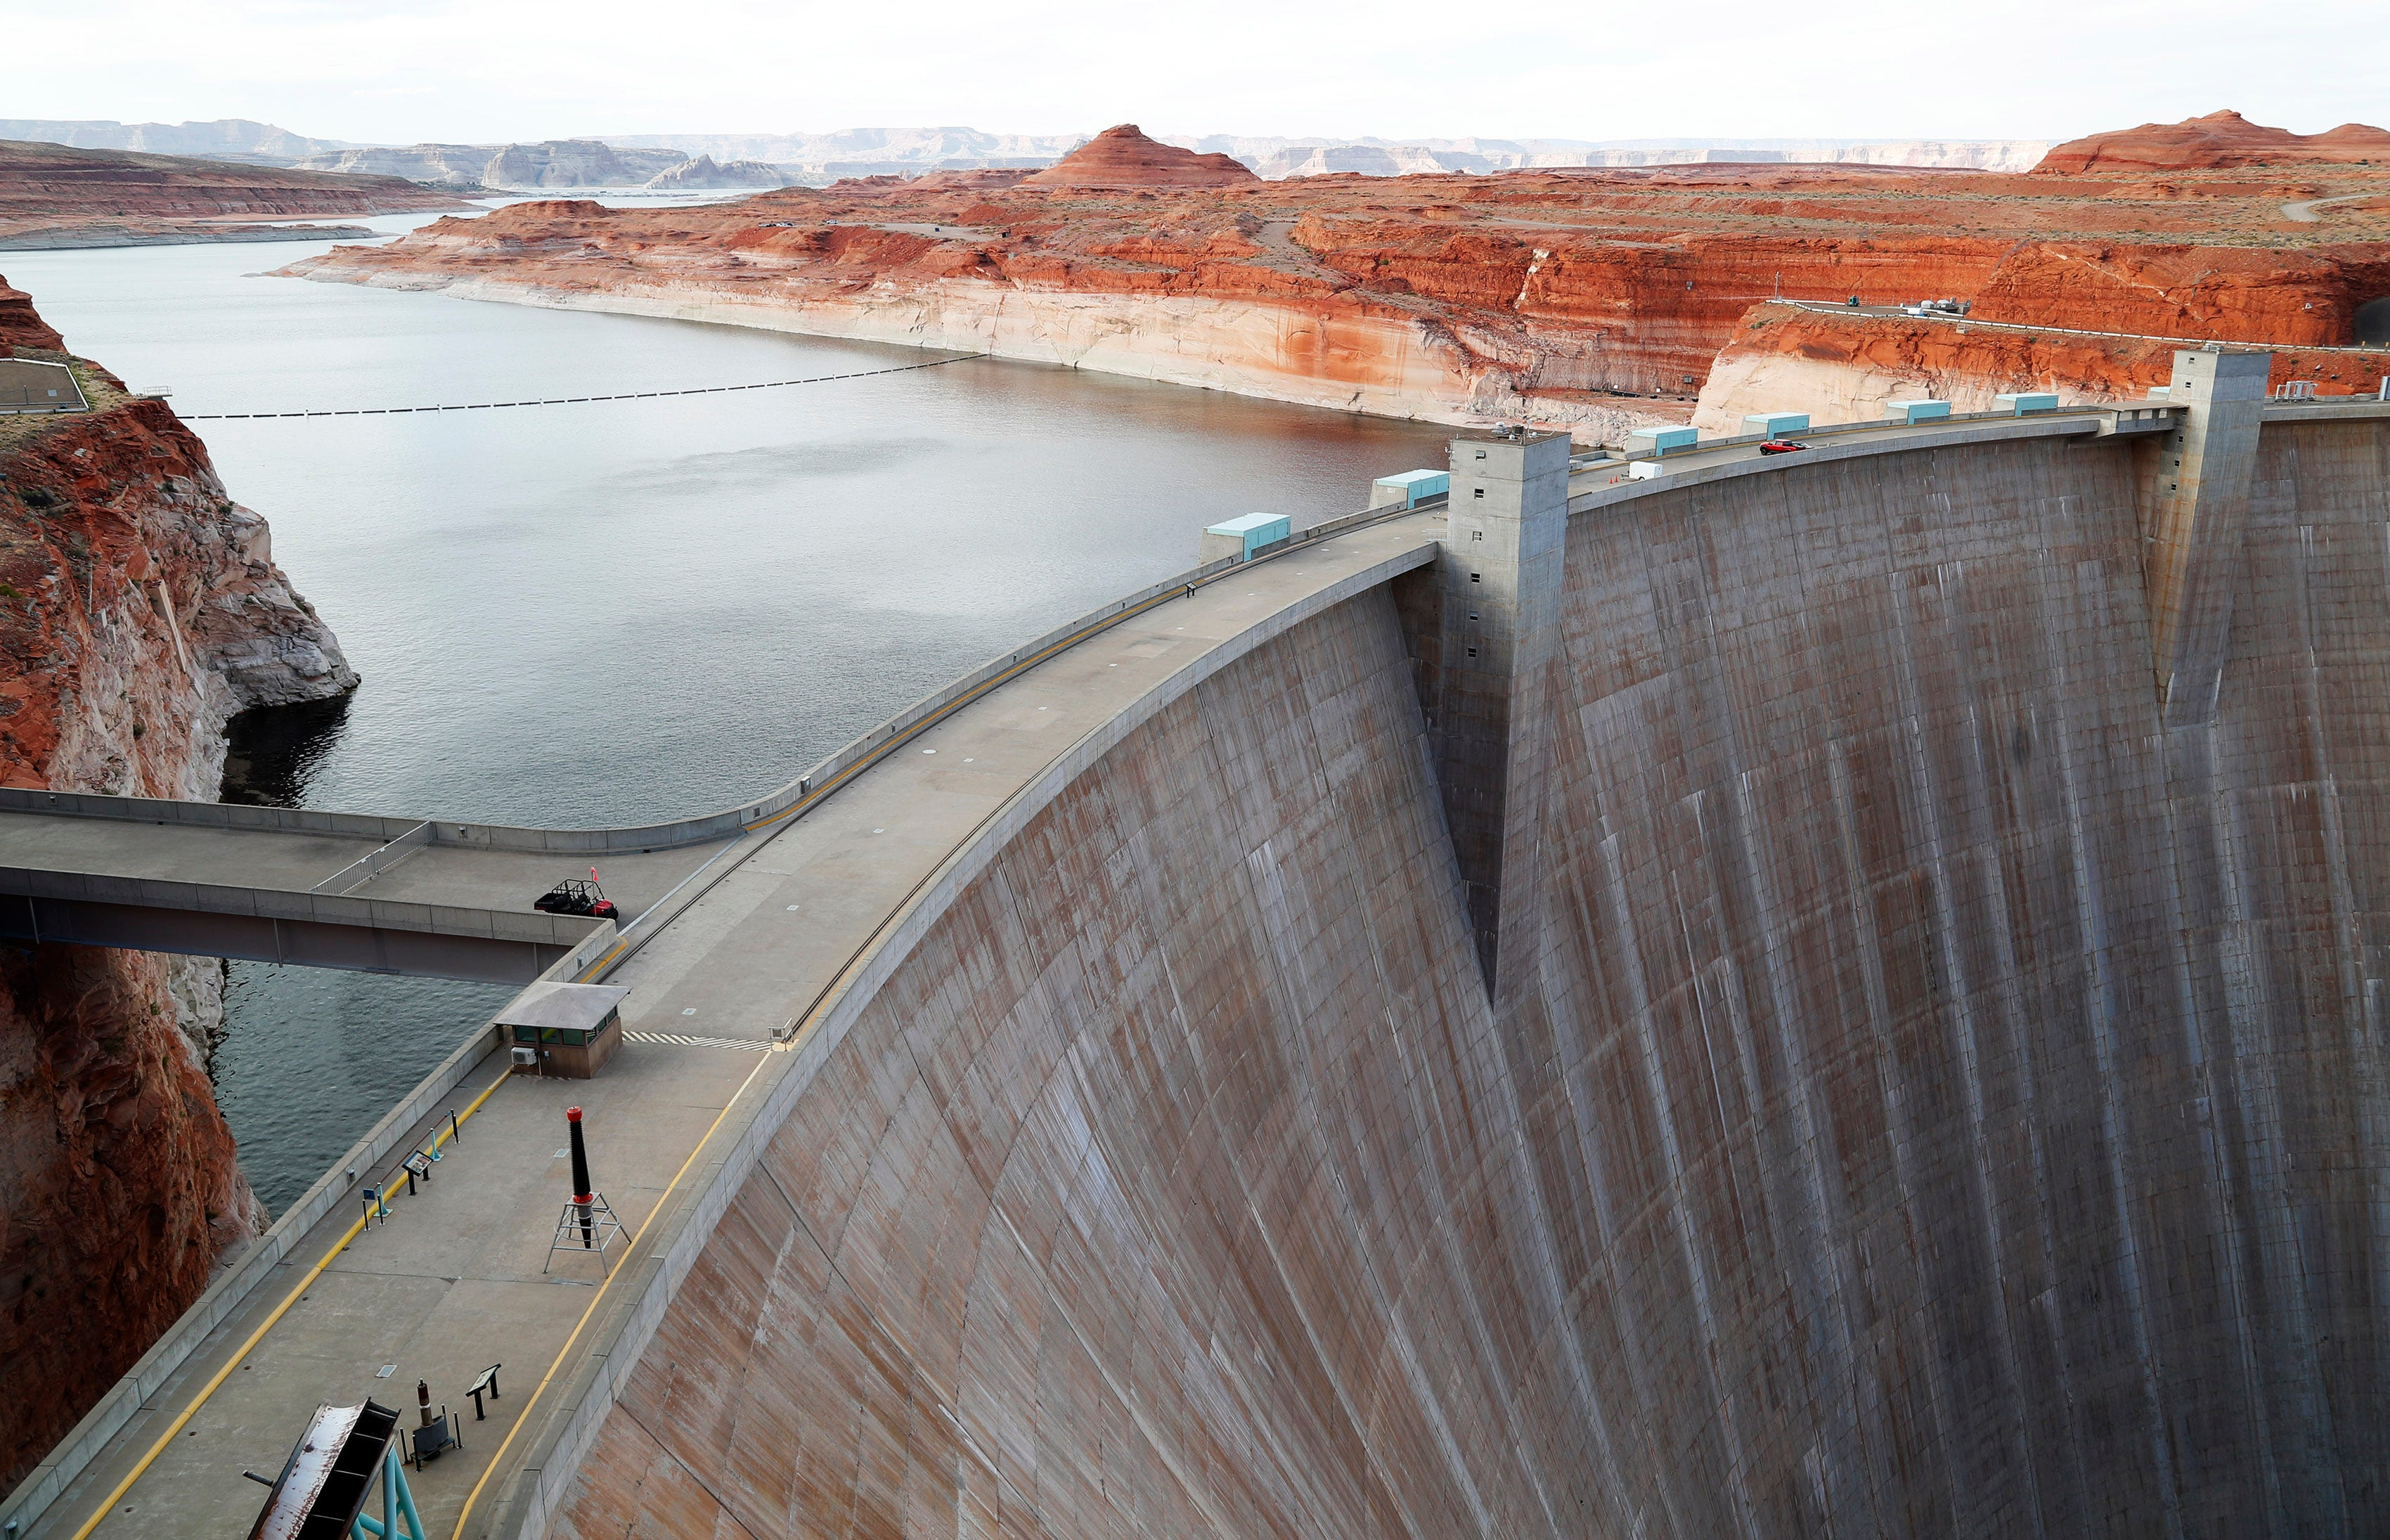 The Colorado River has suffered through mostly dry winters since the turn of the 21st century, offering less springtime snowmelt to refill Lake Powell than Glen Canyon Dam's engineers had counted on. The reservoir now sits about half empty, and the dam's hydropower water intake is closer to the warm surface. The turbines now churn and release warmer water than when the reservoir was full.